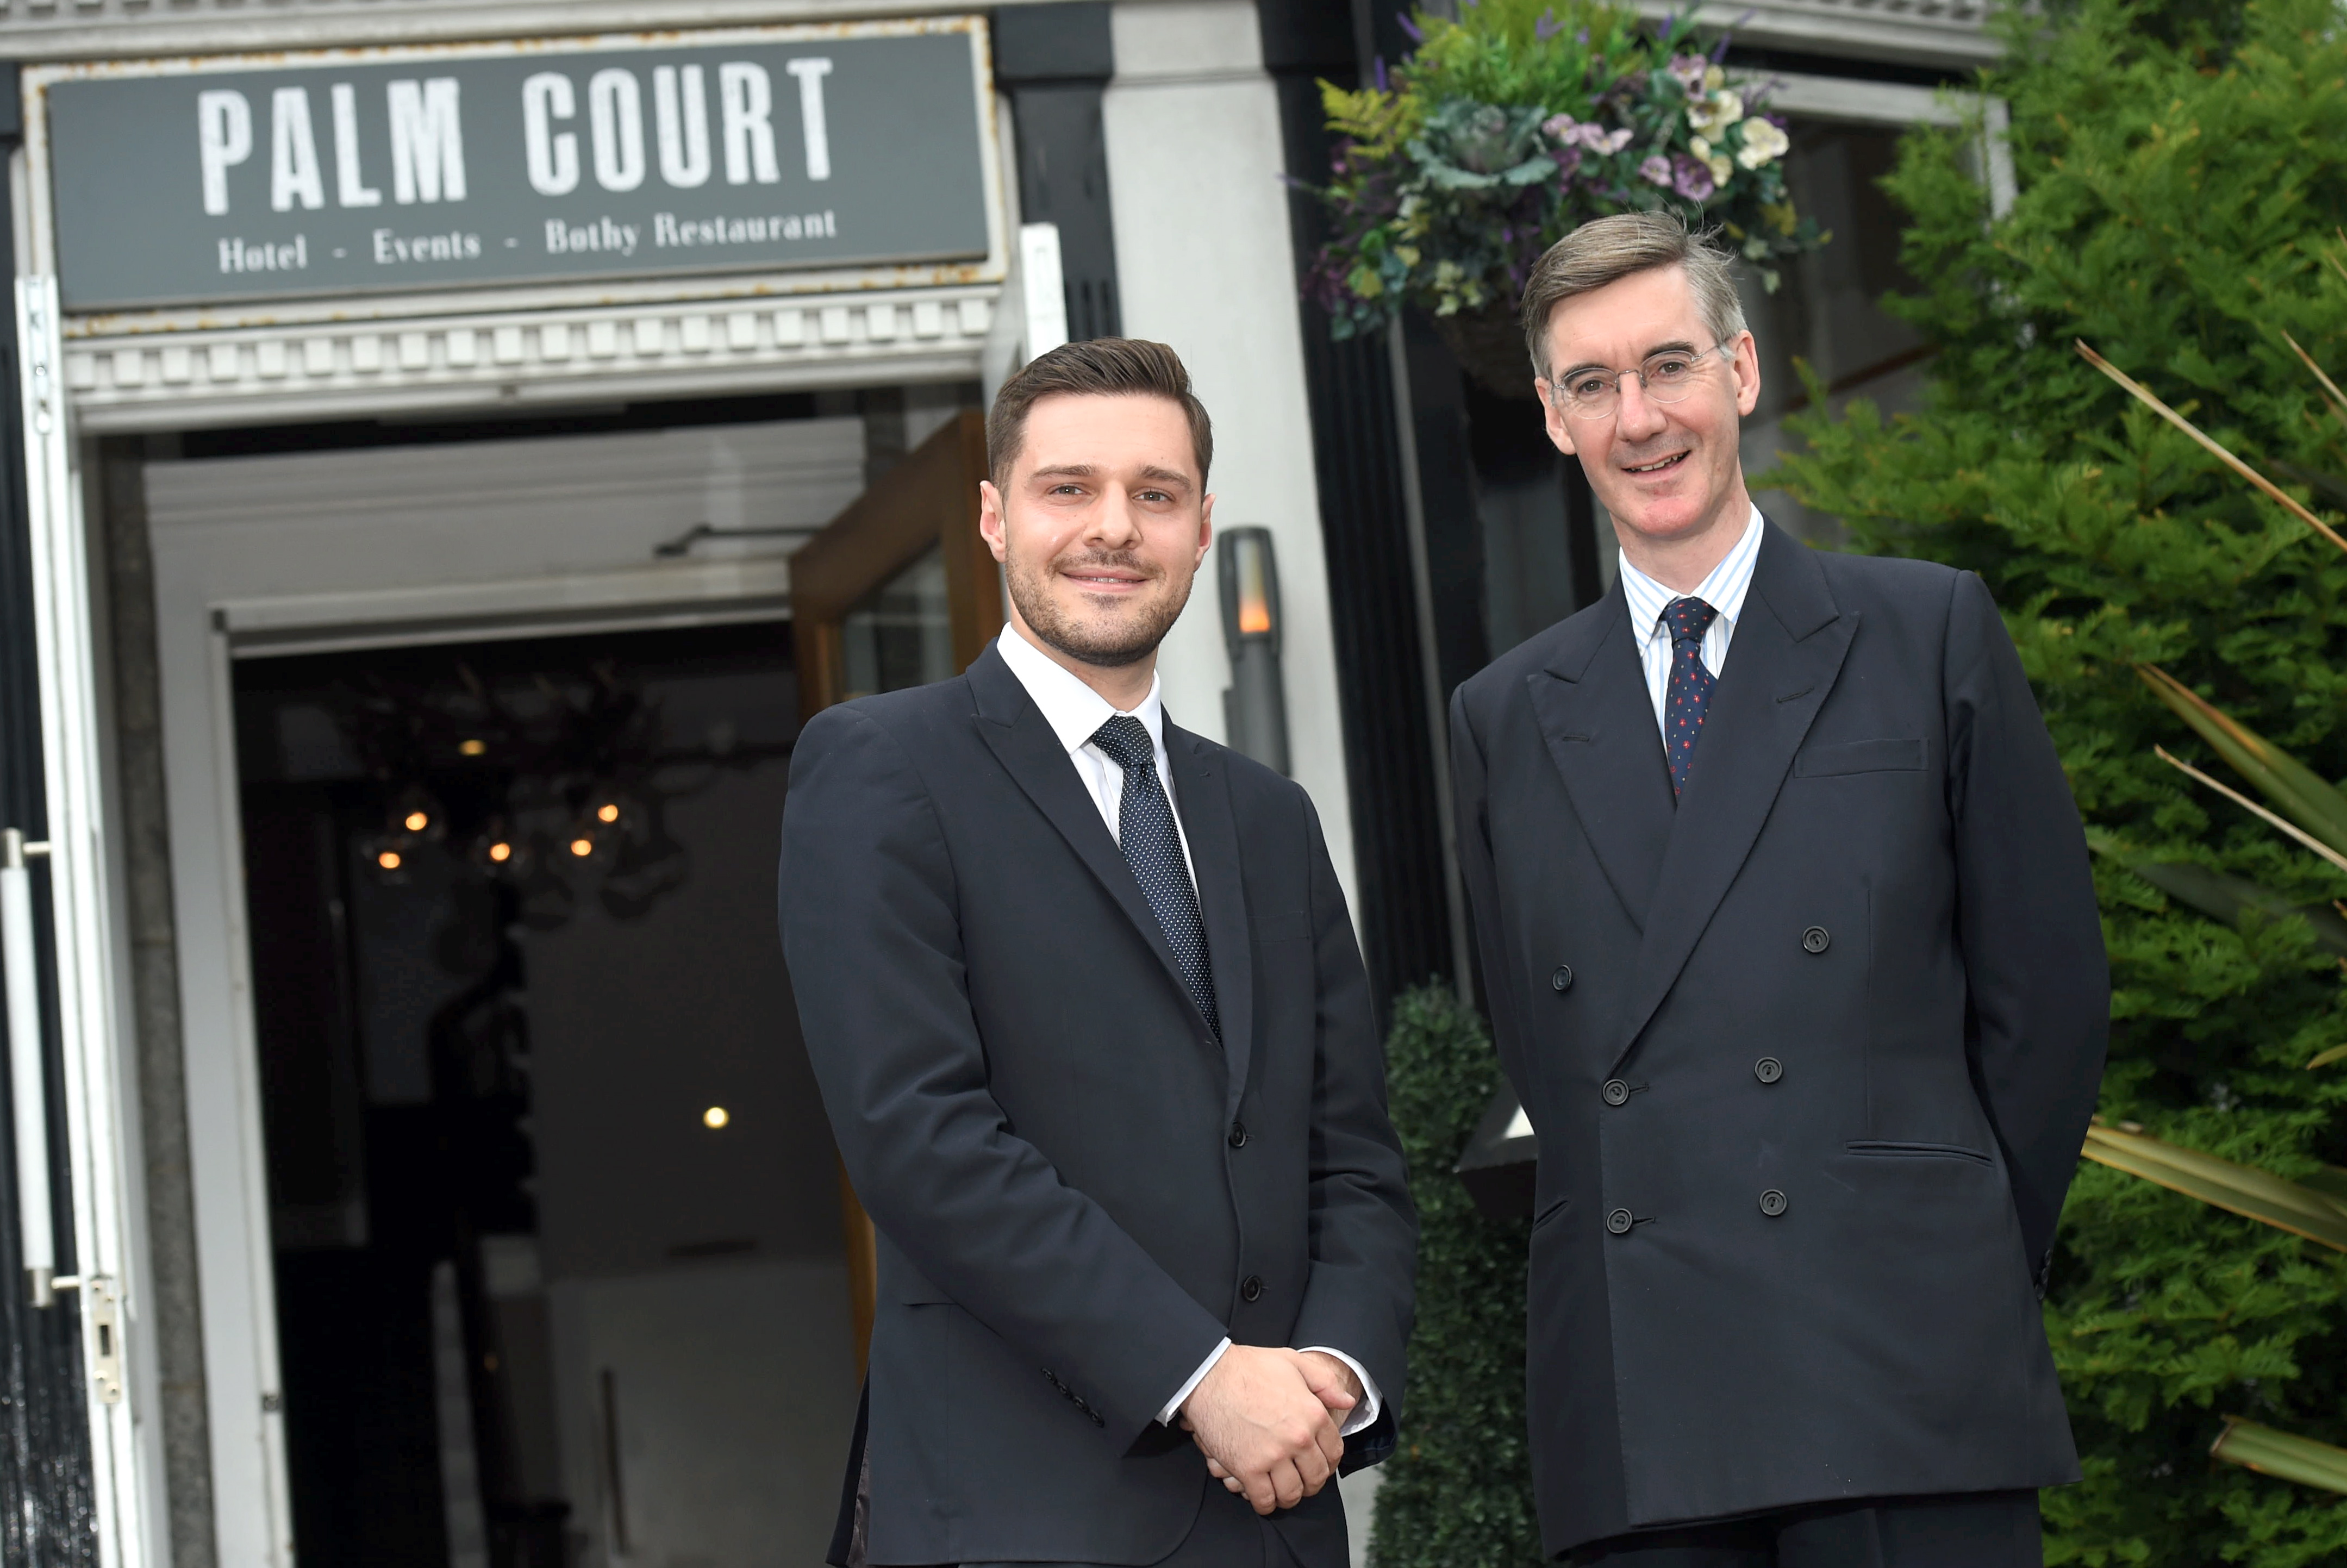 Aberdeen South MP Ross Thomson, left, and Jacob Rees-Mogg MP, right.